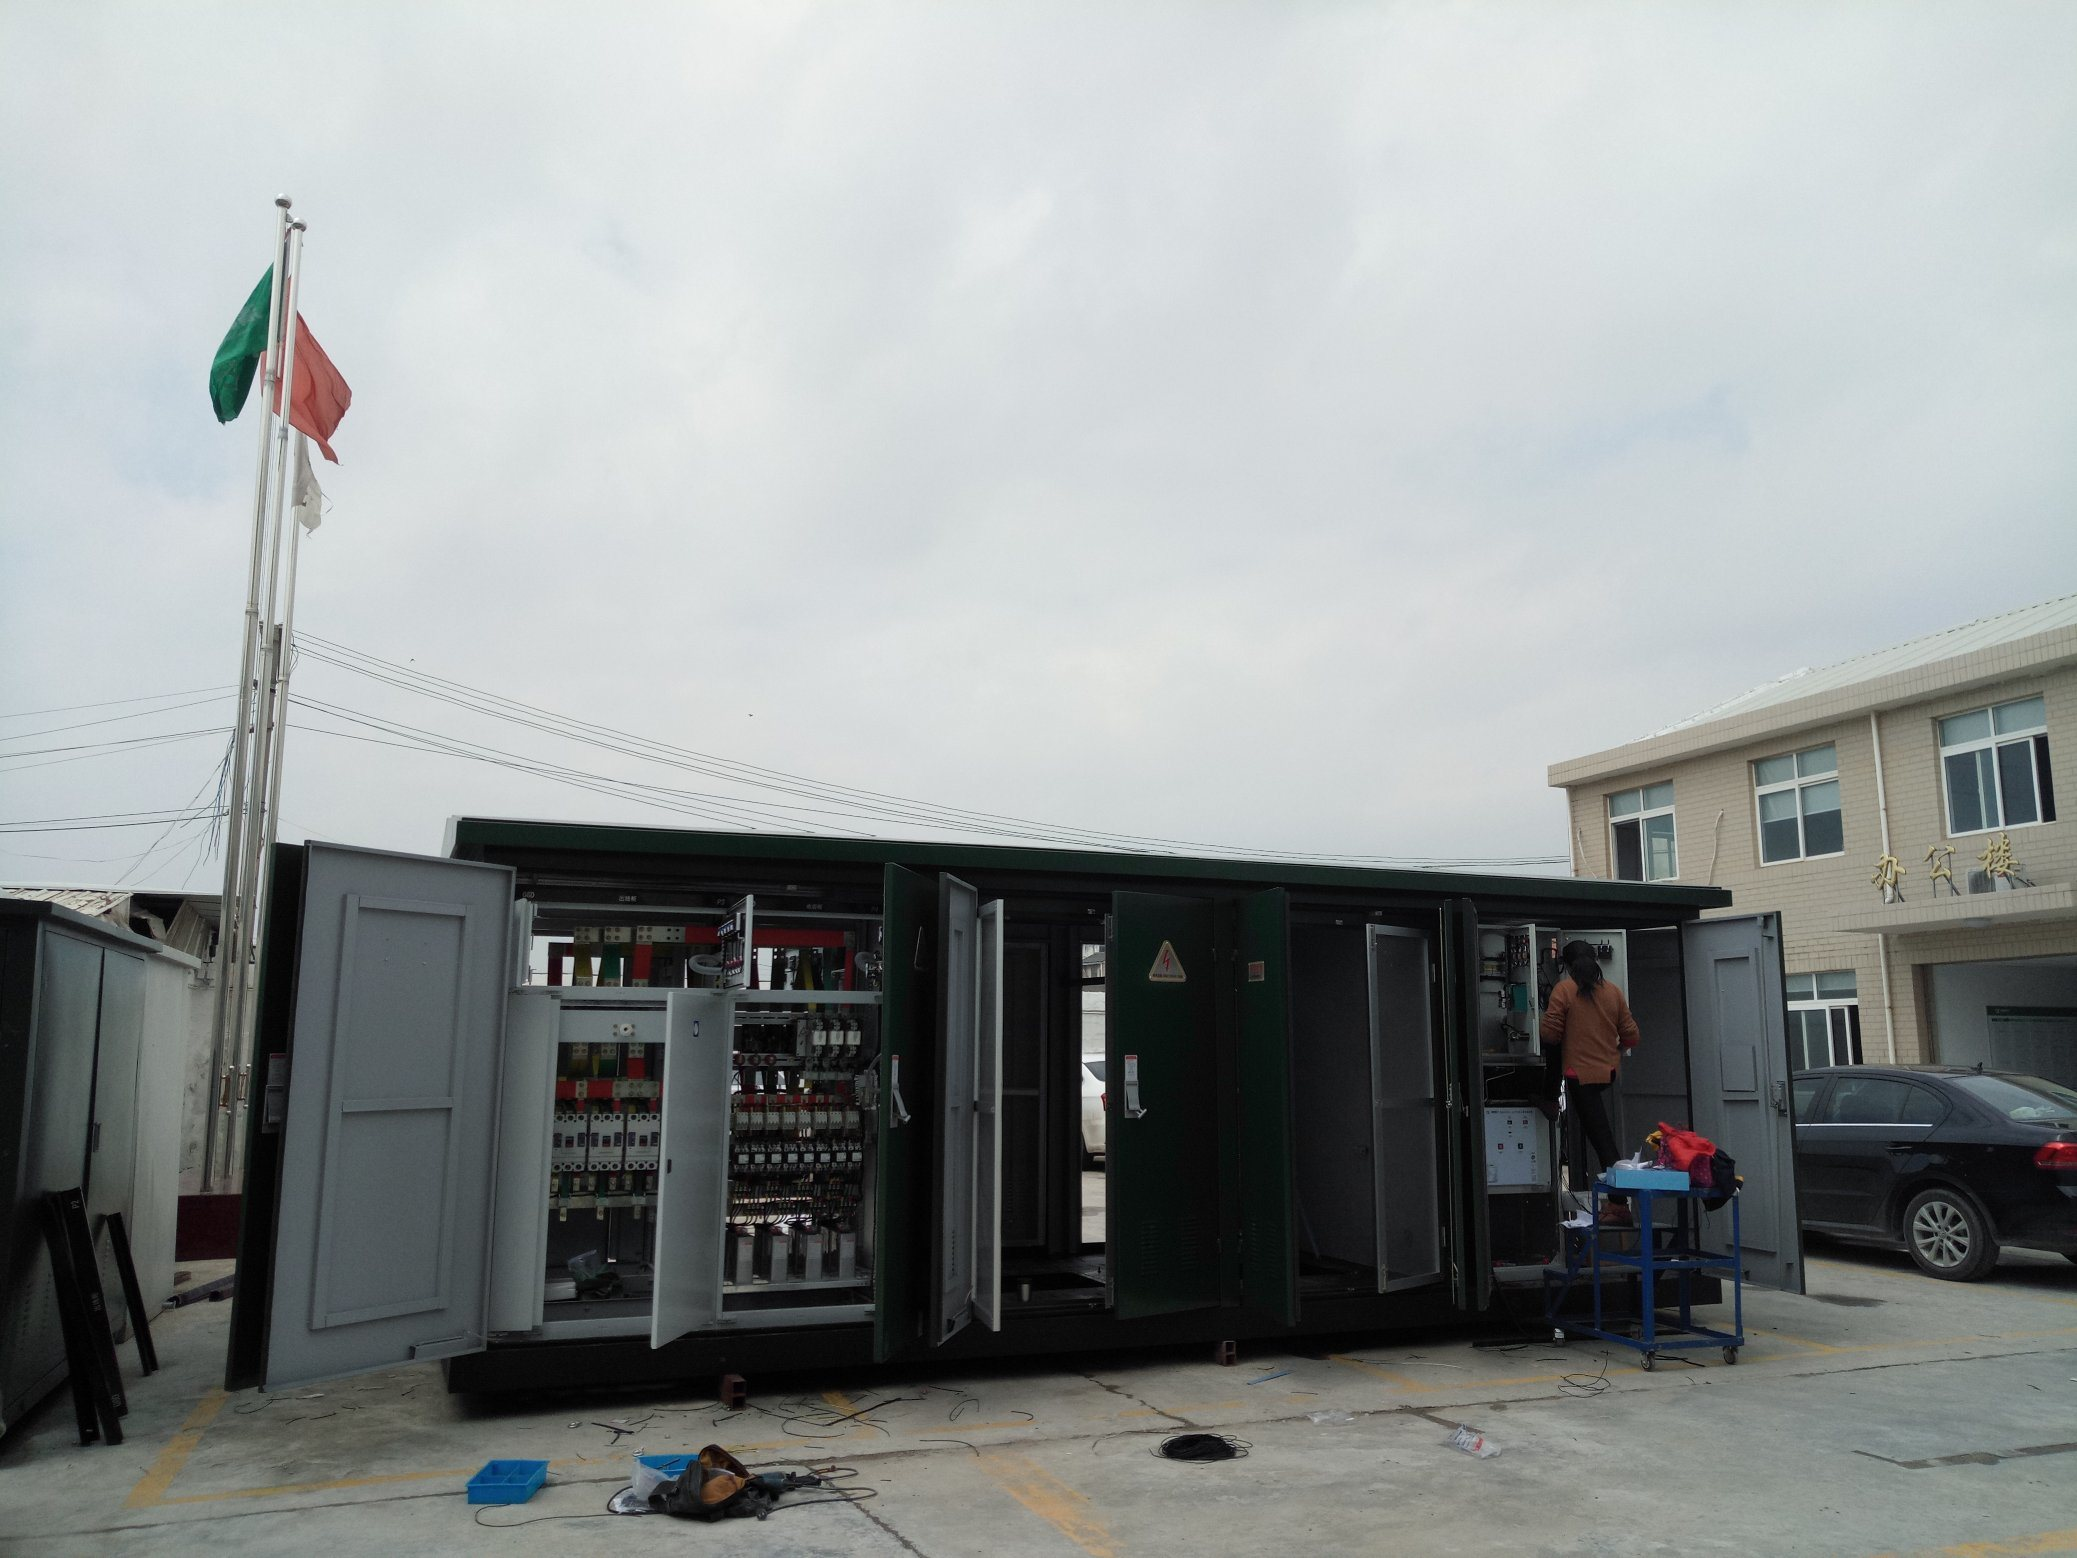 Yb Mv / LV Prefabricated Substation